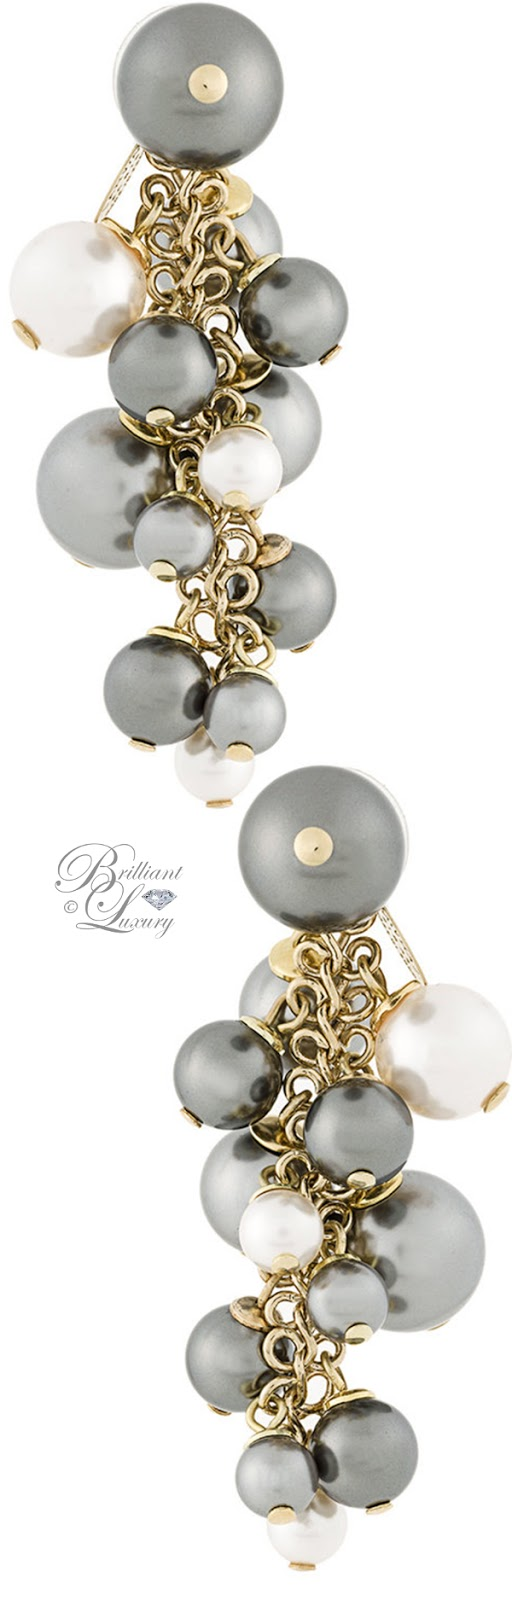 Brilliant Luxury ♦ Lanvin Pearl Embellished Drop Earrings